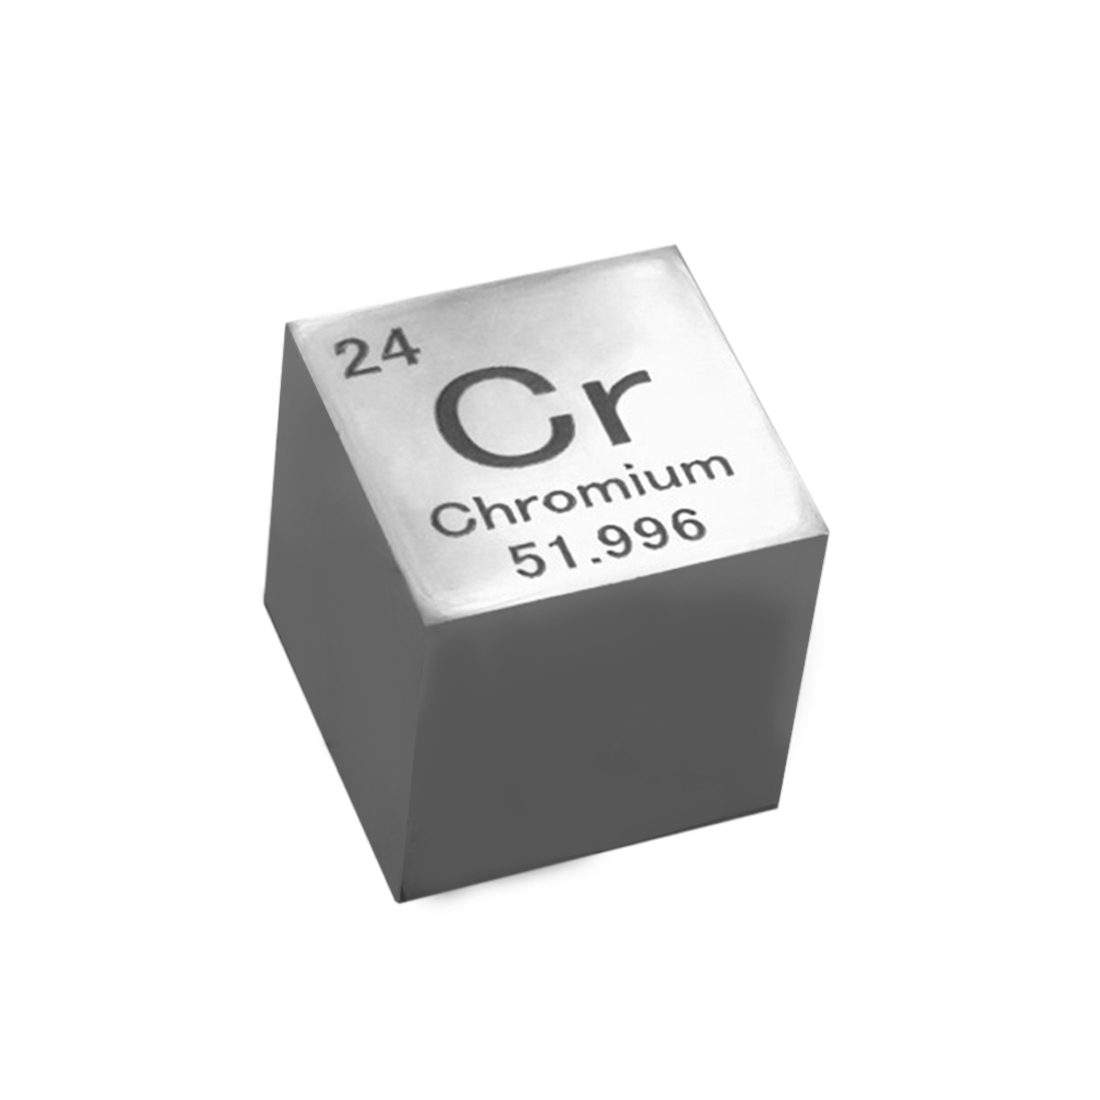 10 X 10 X 10mm High Pure Mirror Polish Chromium Cube Periodic Table Of Elements Cube For Lab Education Collection(Cr≥99.7%)